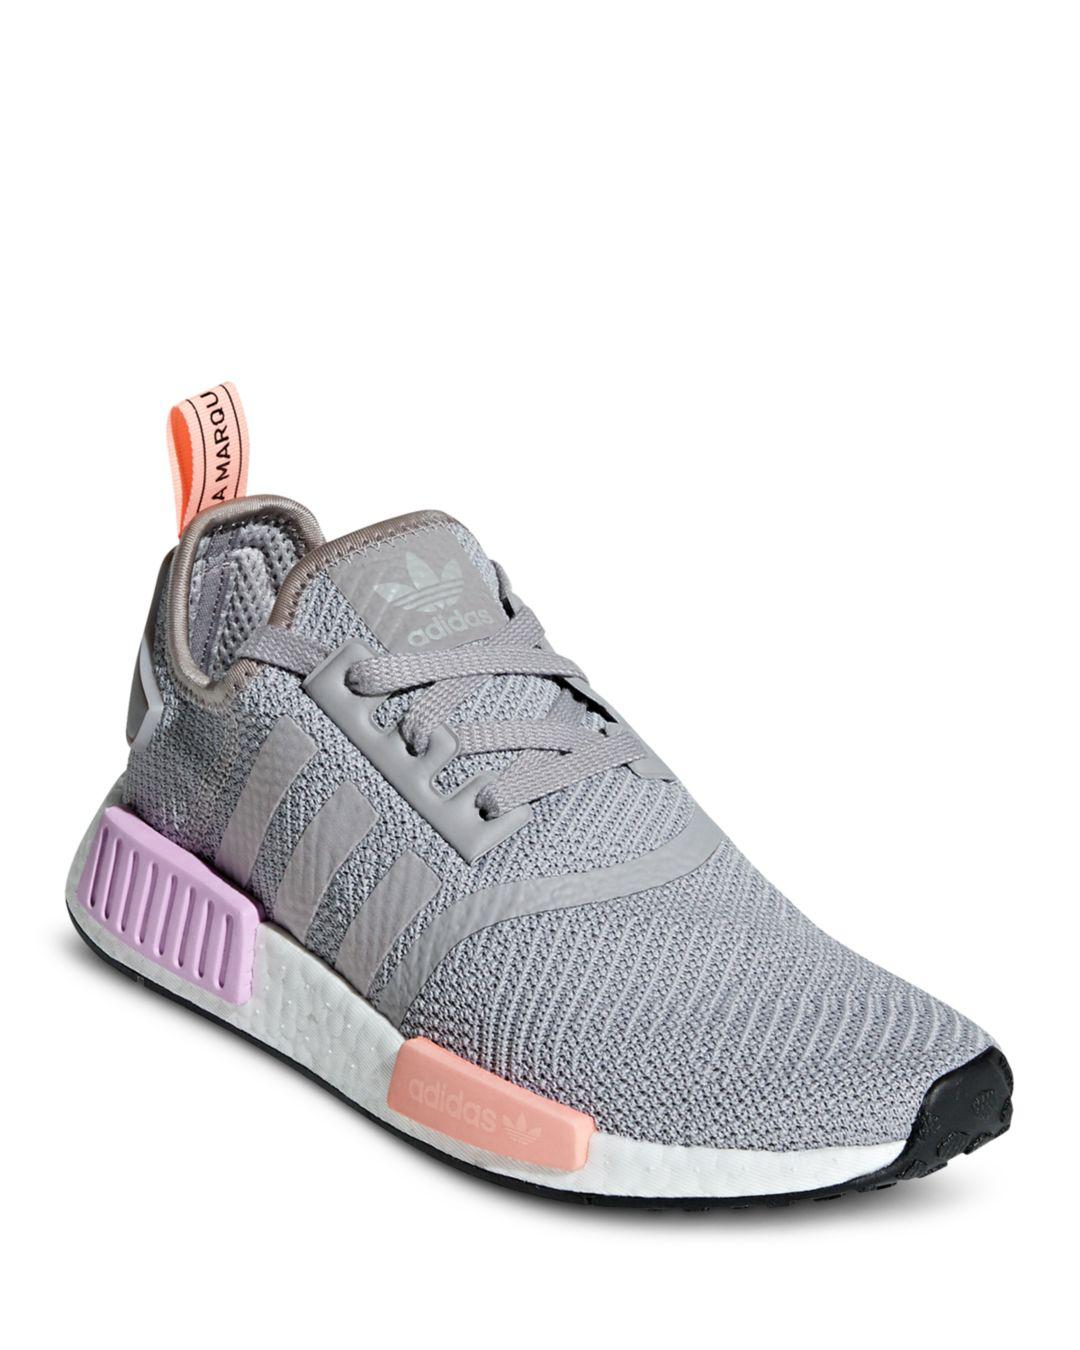 b66a970b7db adidas Nmd R1 Casual Sneakers From Finish Line in Gray - Lyst